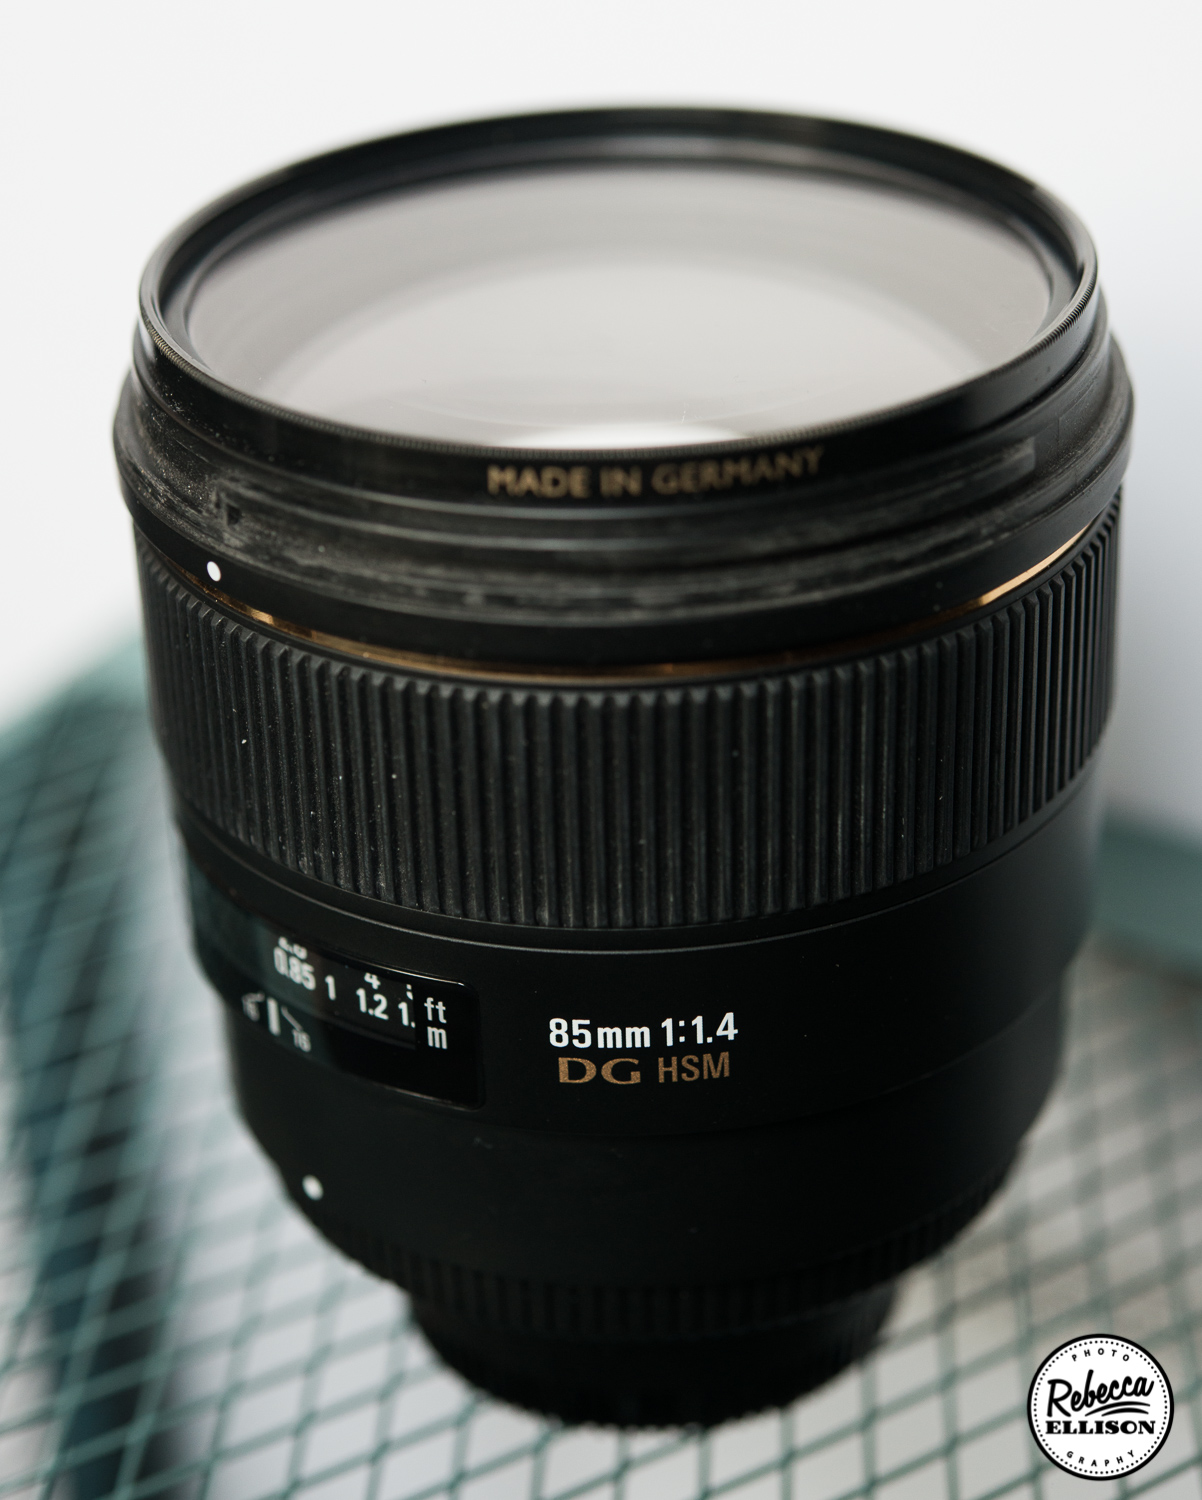 wedding photography lens choice.  85mm 1.4 lens